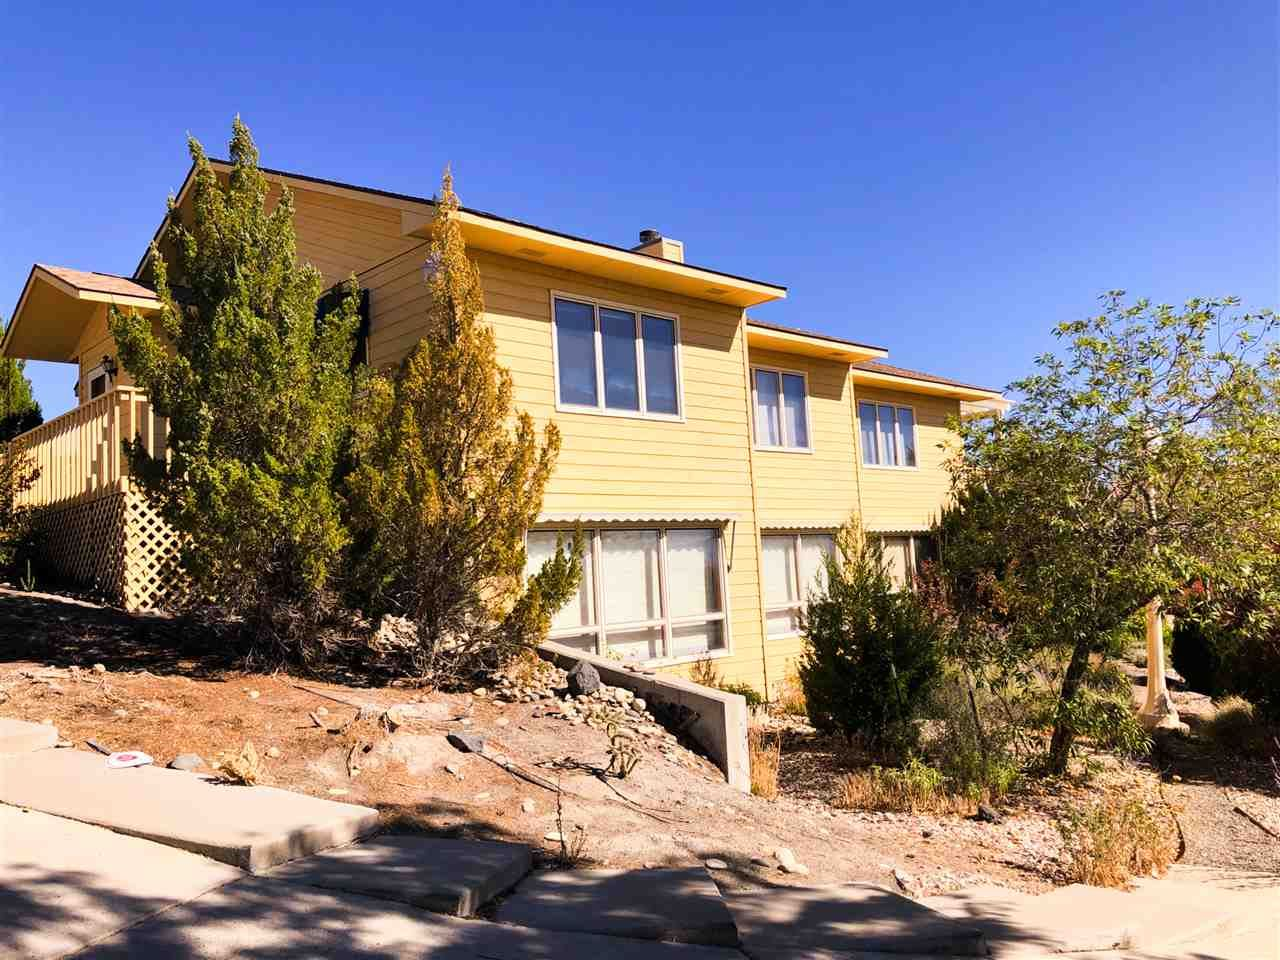 Photo of 589 Grand Cascade Way, Grand Junction, CO 81501 (MLS # 20205155)